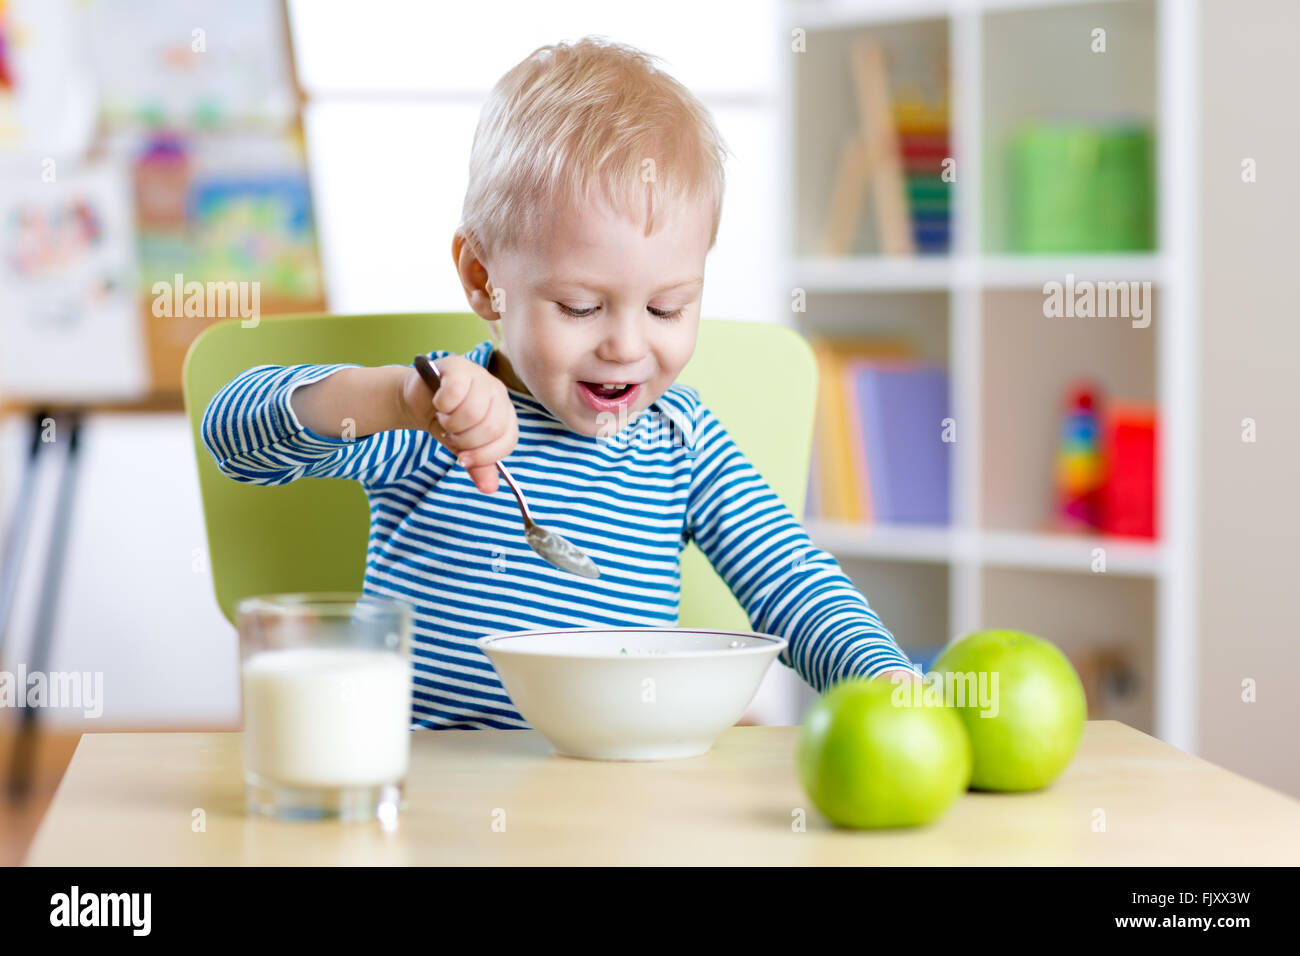 Enfant de manger des aliments sains à la maison ou au jardin Photo Stock